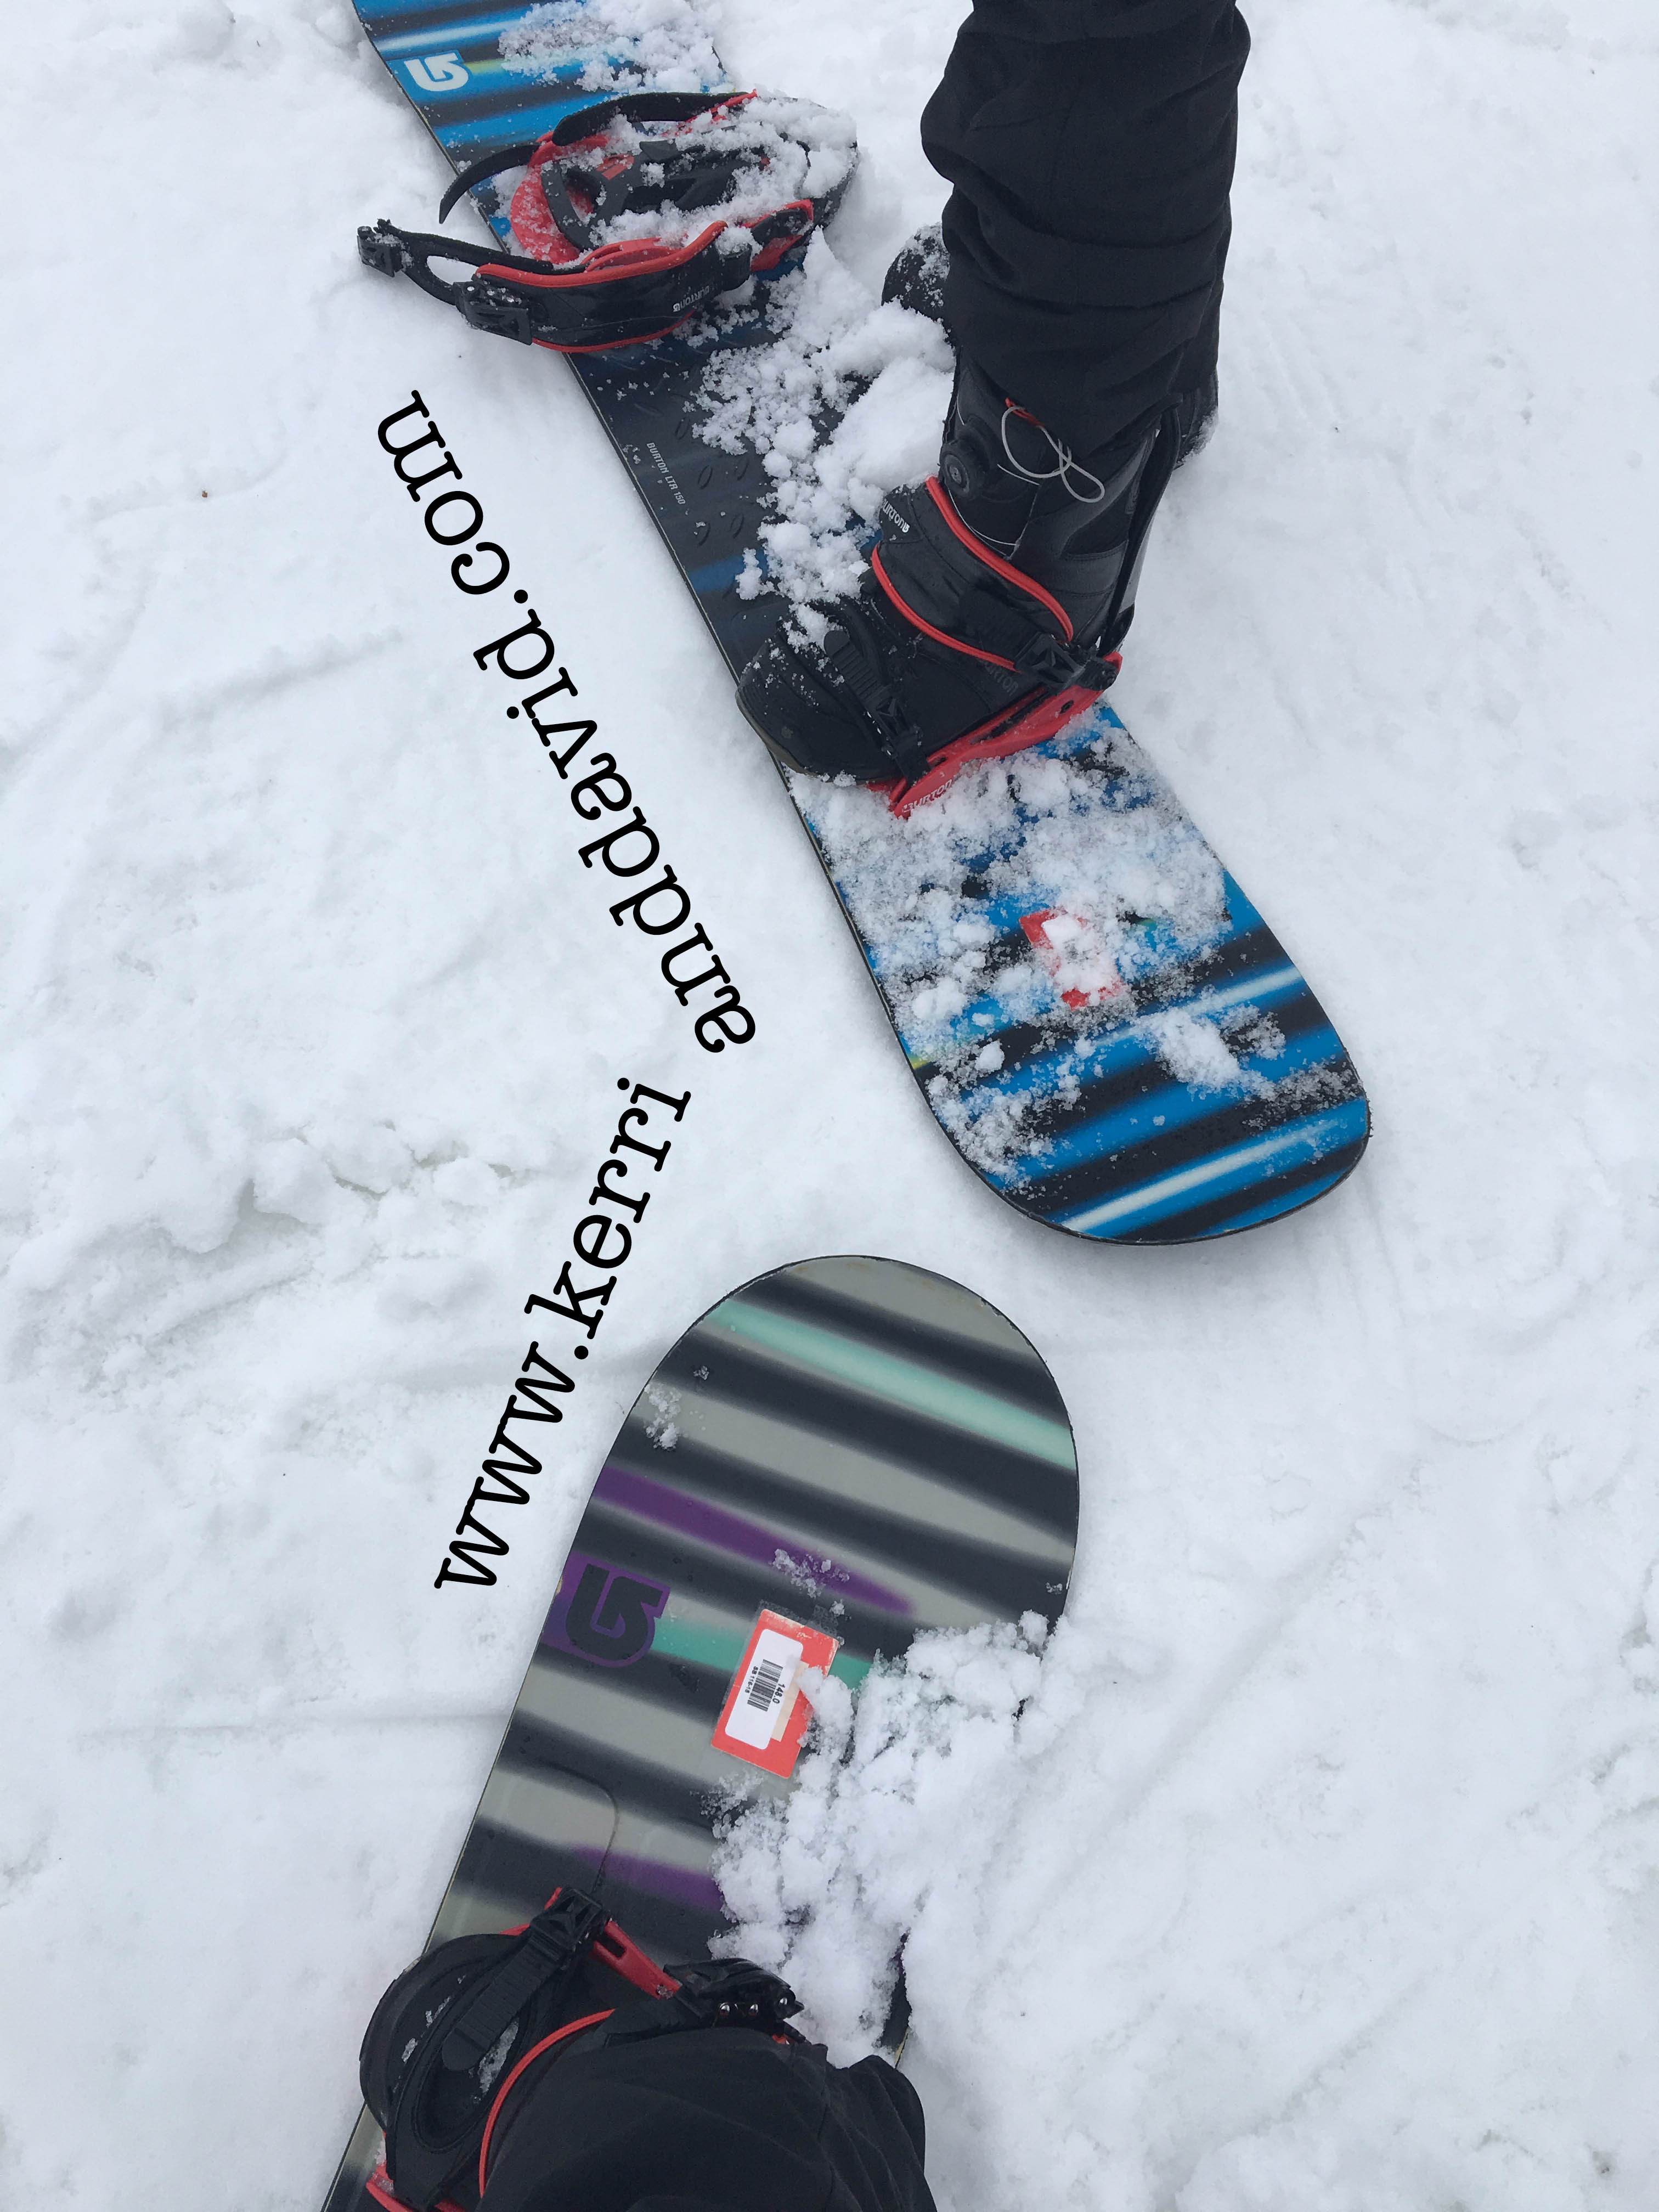 snowboards website box